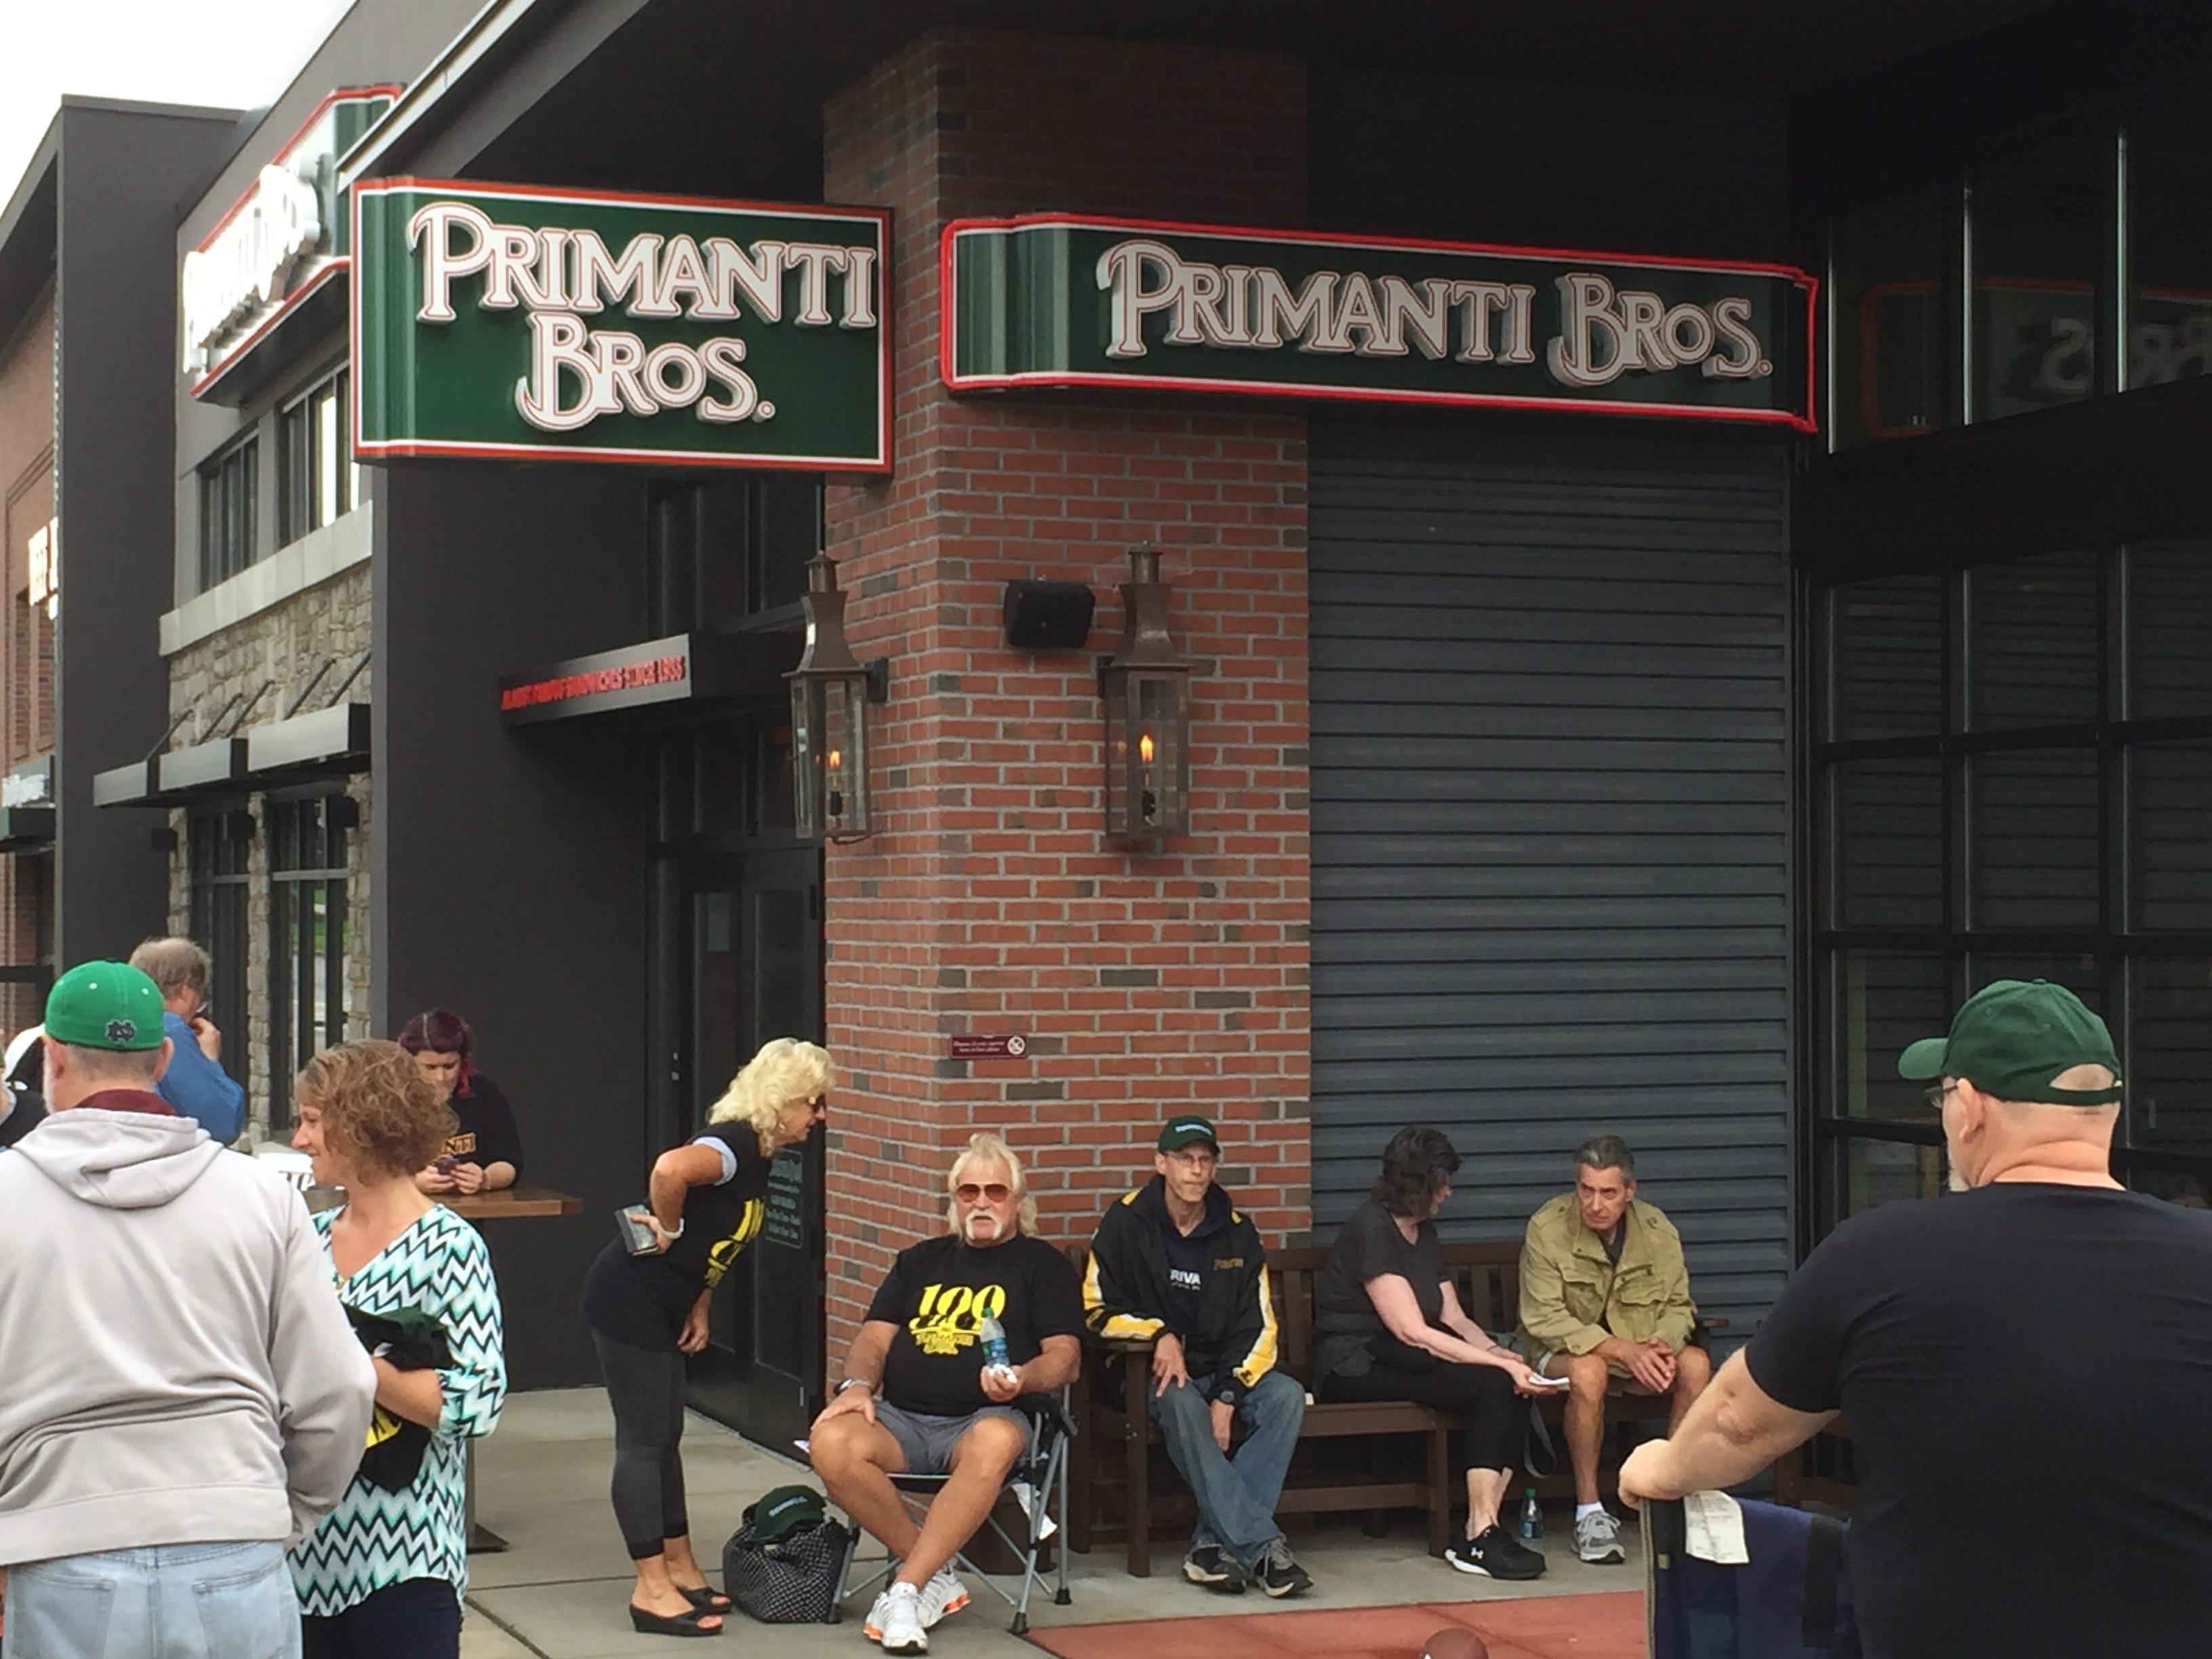 100 lucky customers won free Primanti Bros. for a year after camping out for the restaurant's grand opening on Wednesday, Sept. 26.